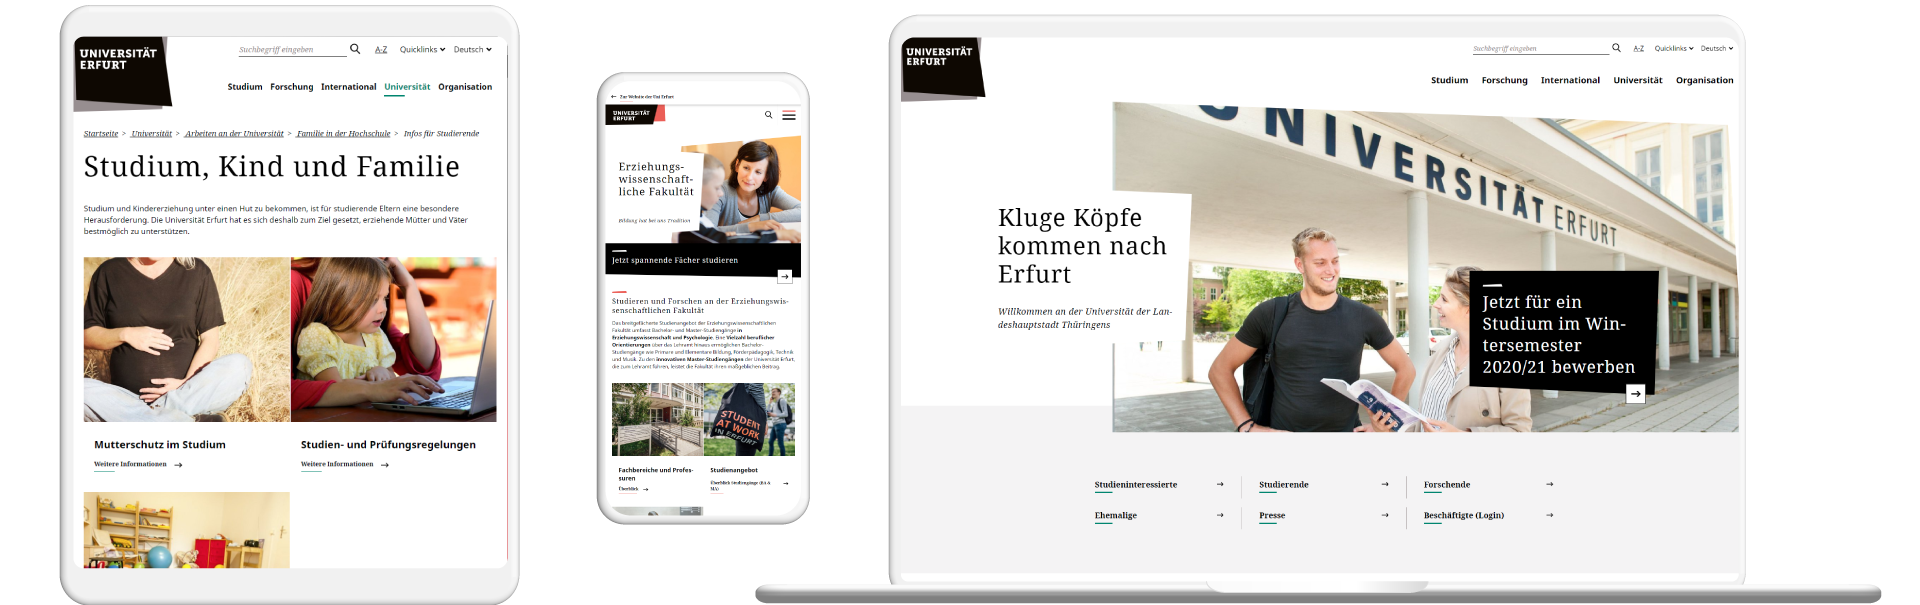 Screens der Website Uni Erfurt